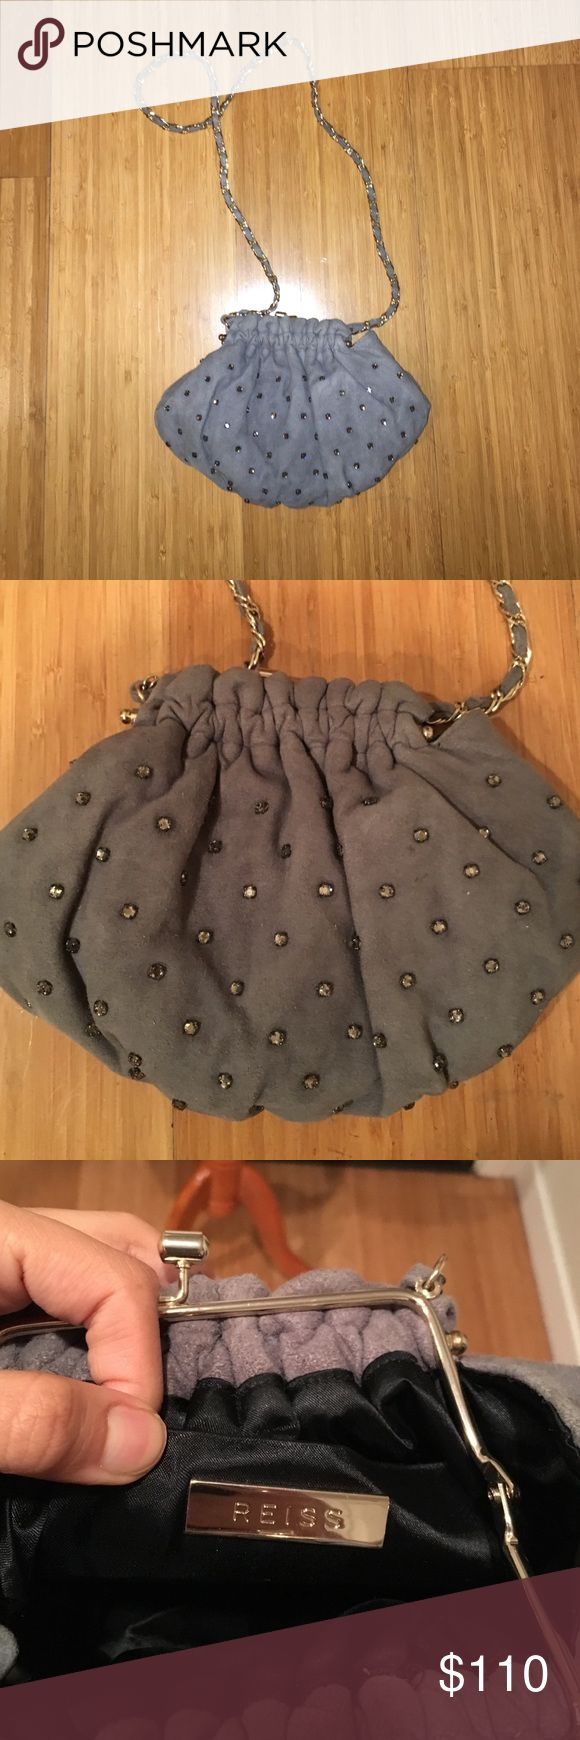 Reiss Gray Bag with Chain Perfect bag for a night out. So chic with kiss-lock closure. Material is velvet-y and has studs sewn on it. Can also be worn cross-body. Worn once only. If you have questions, please ask! Reiss Bags Mini Bags